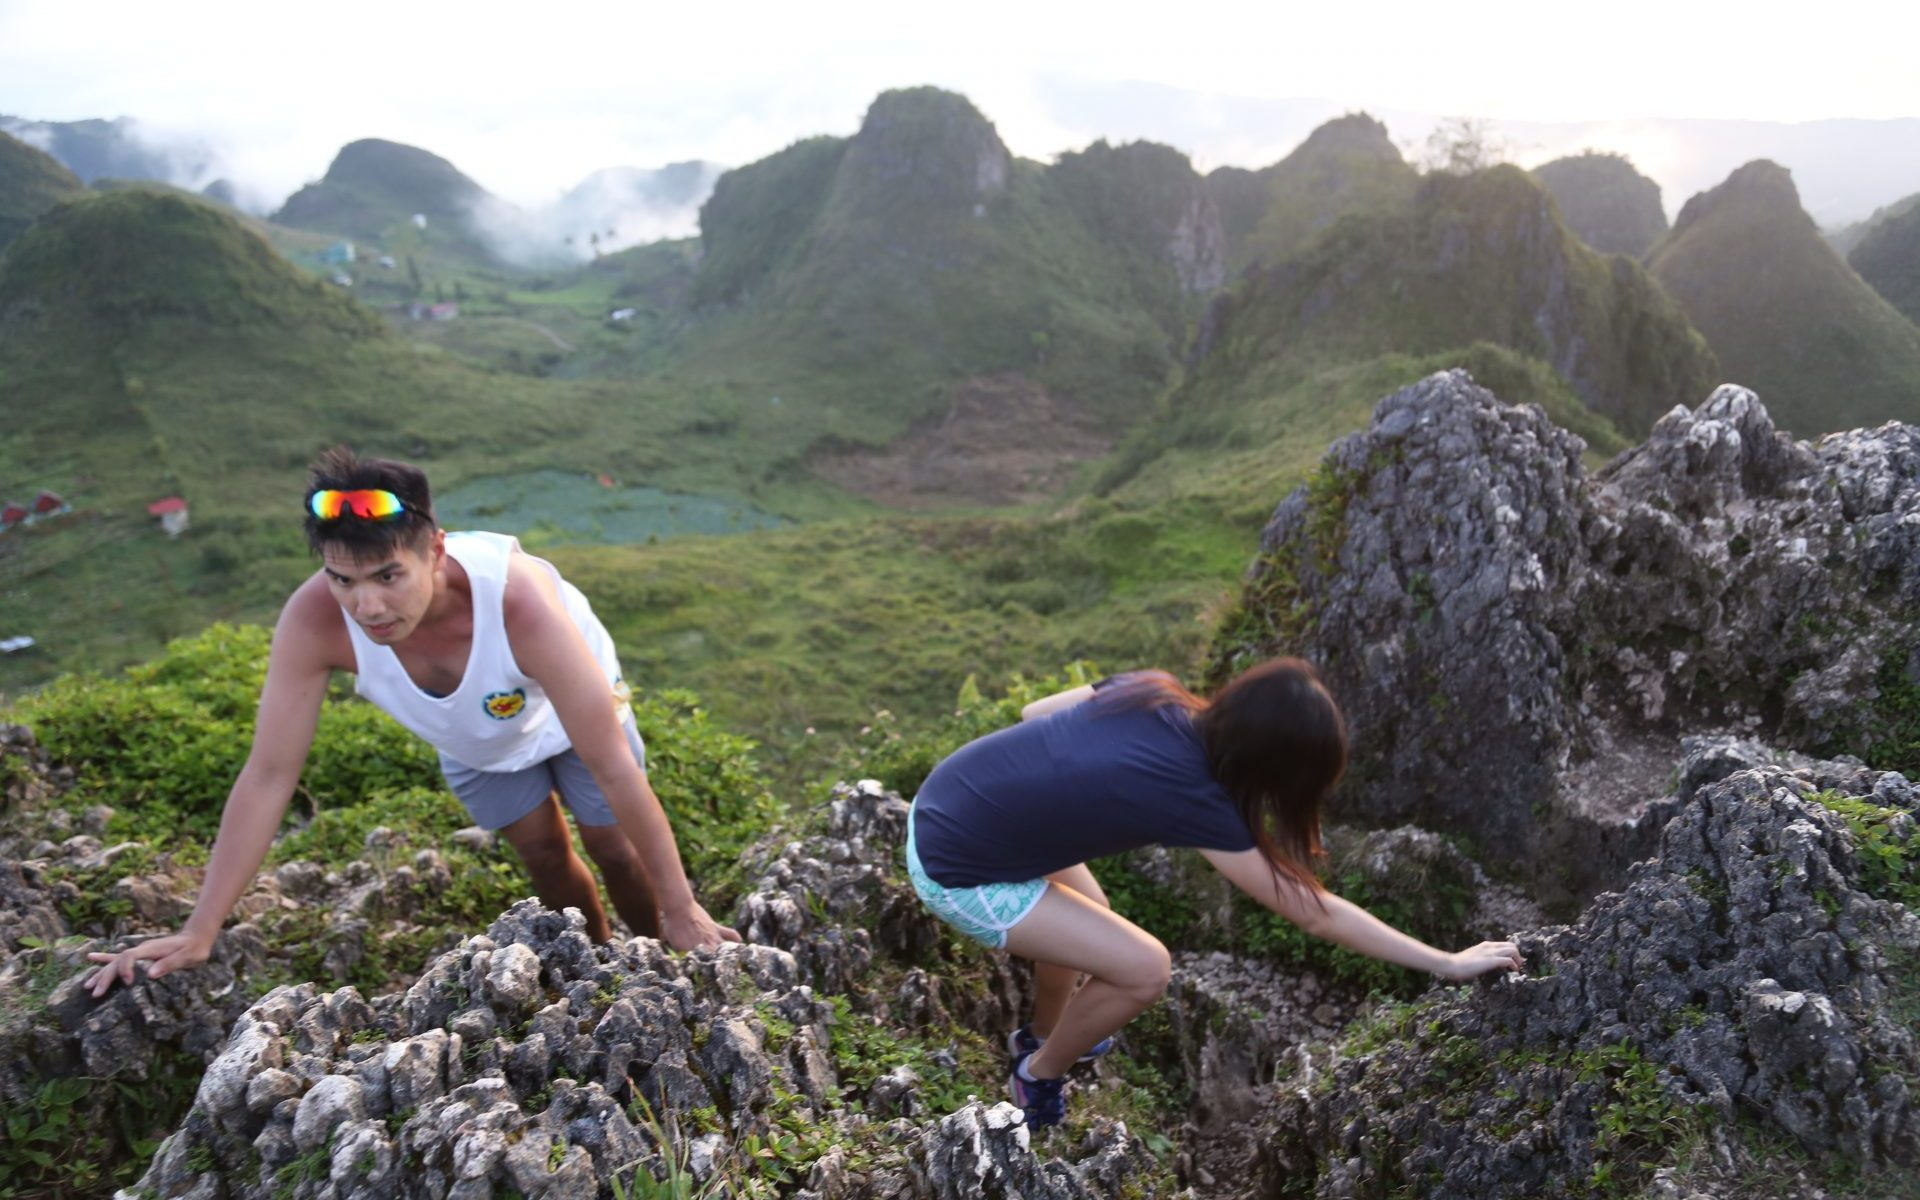 Climbing to the top of Osmena Peak